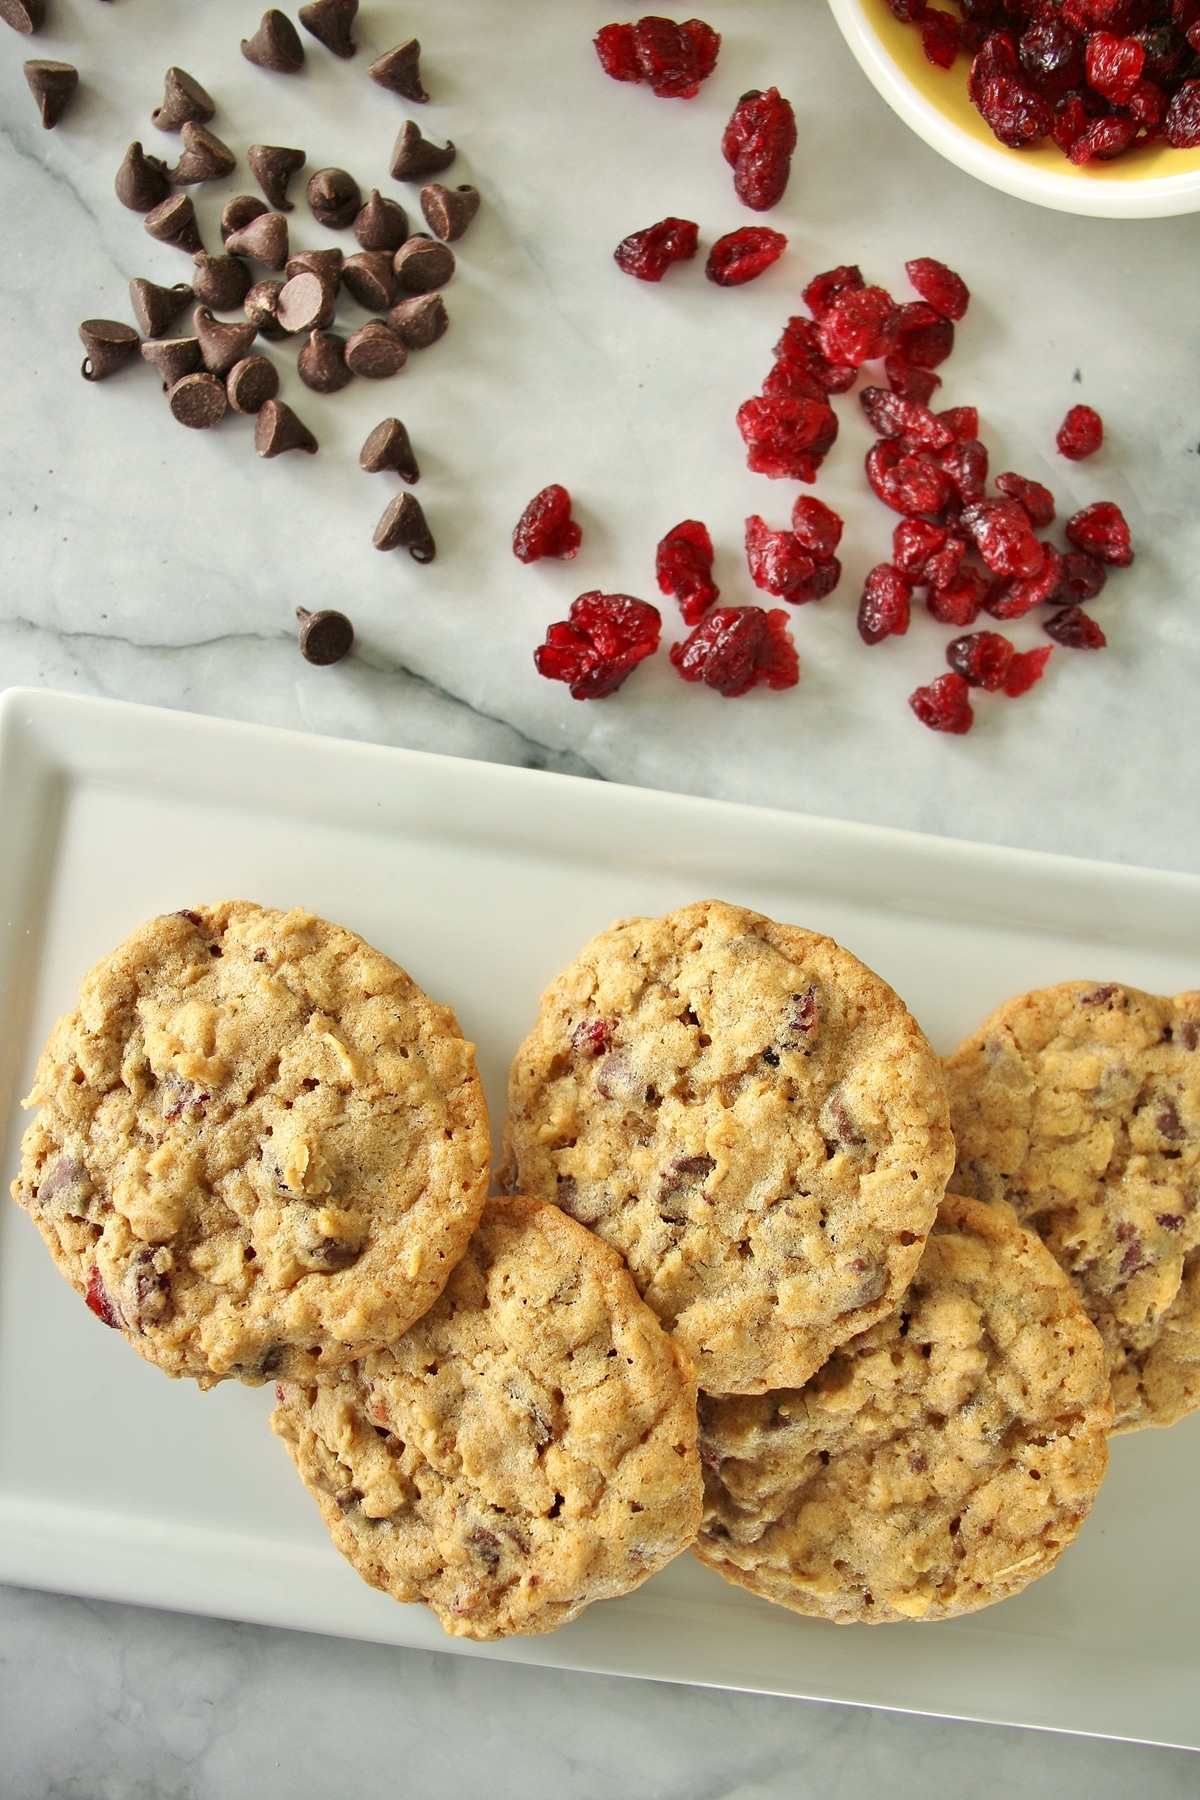 Five cranberry chocolate chip oatmeal cookies on a rectangular white plate